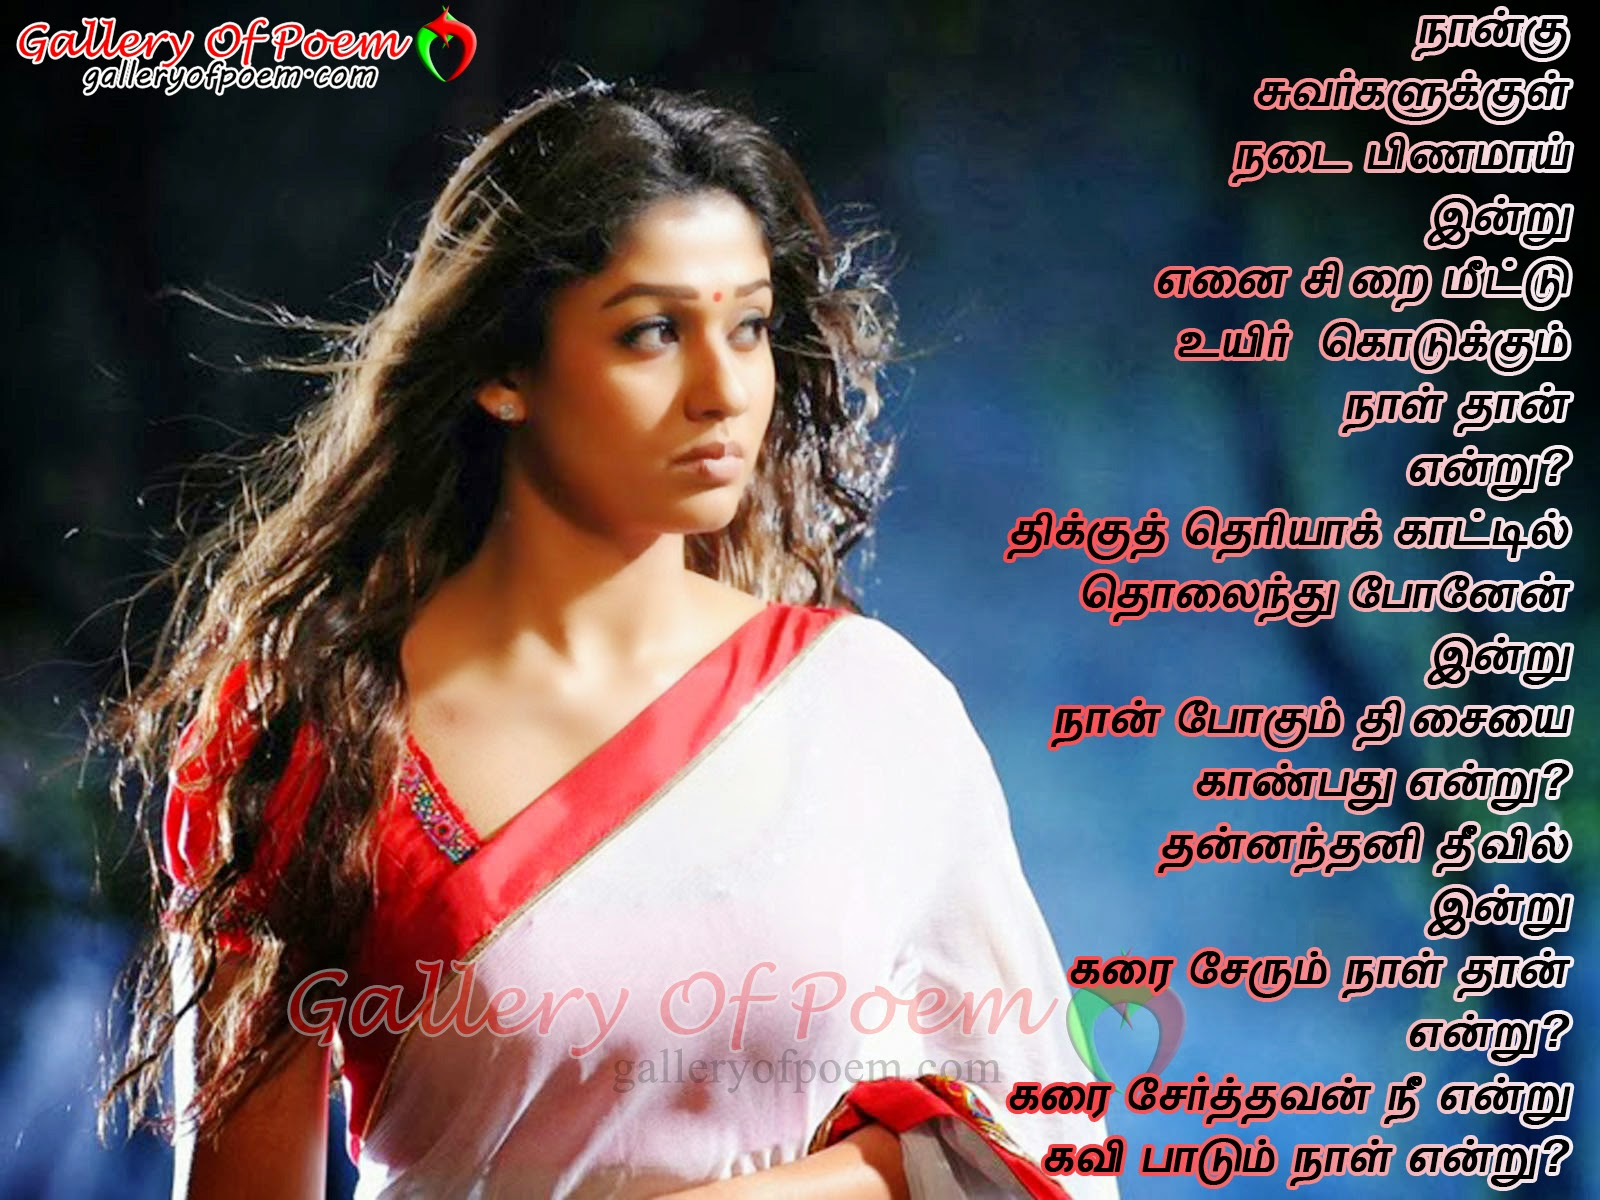 Tamil sad about in love poems